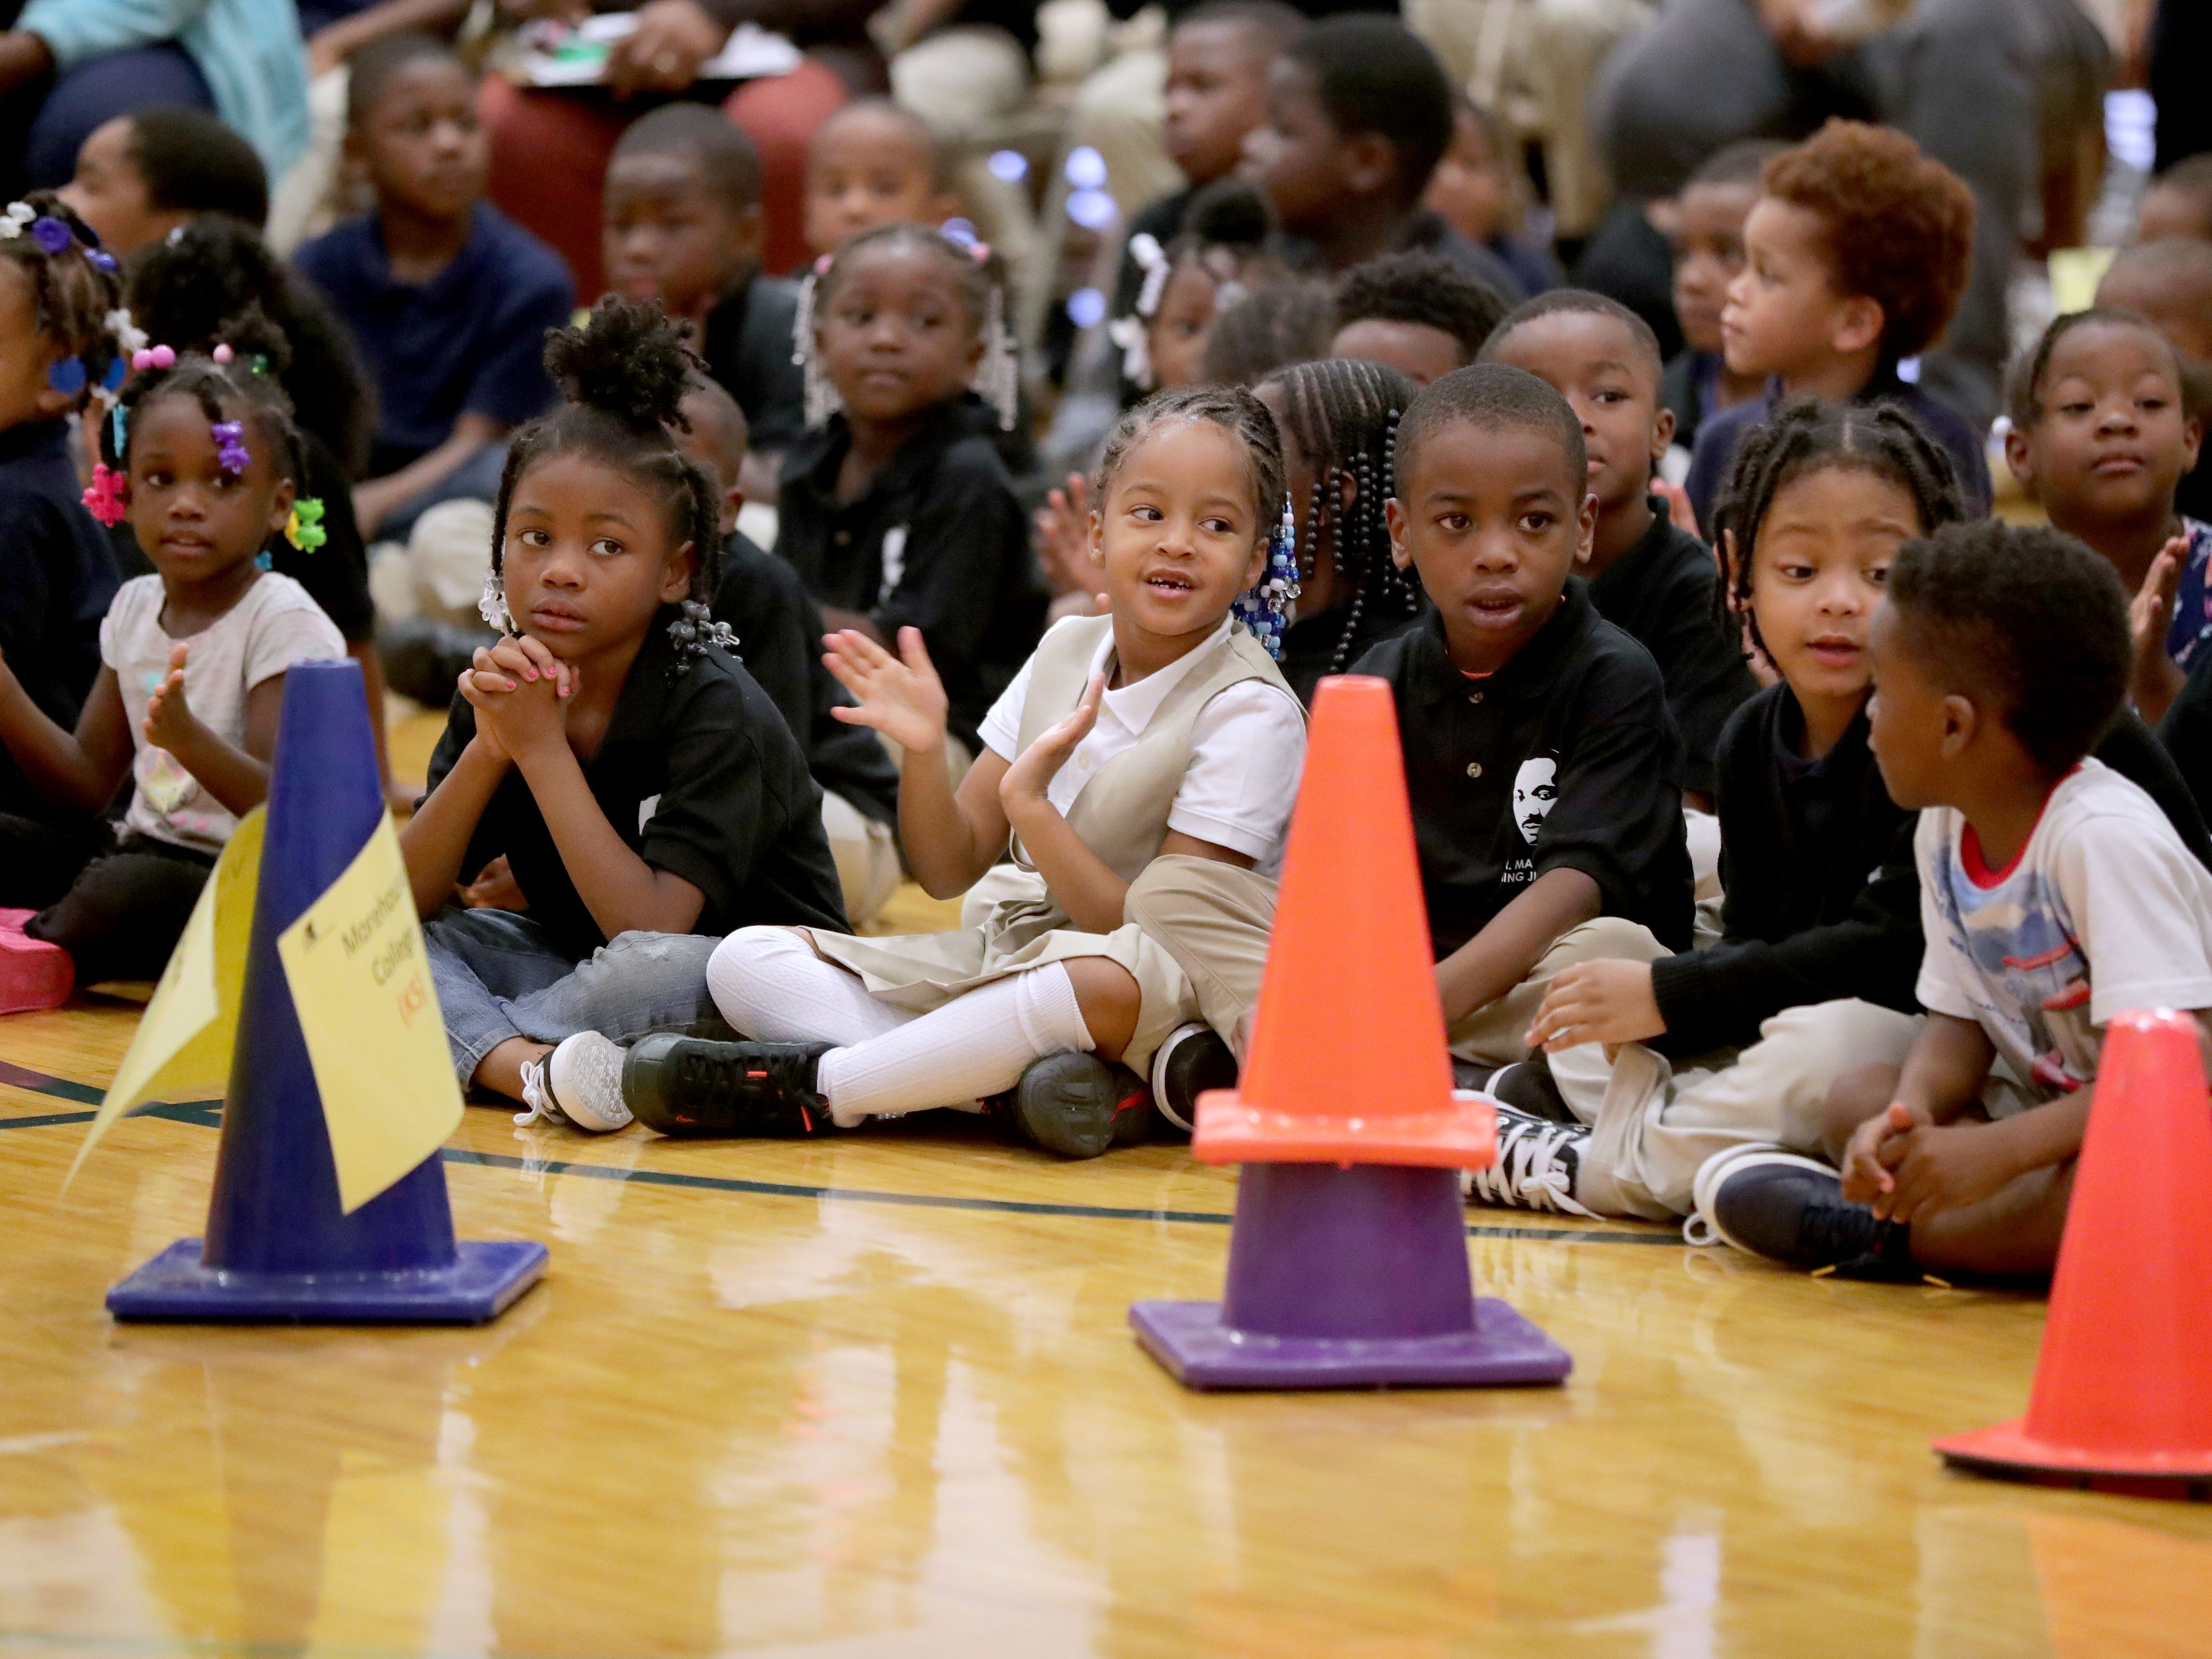 Dr. Martin Luther King Jr. Elementary School students applaud during an assembly Wednesday that was part of the third annual No Empty Backpacks School Supplies Drive.